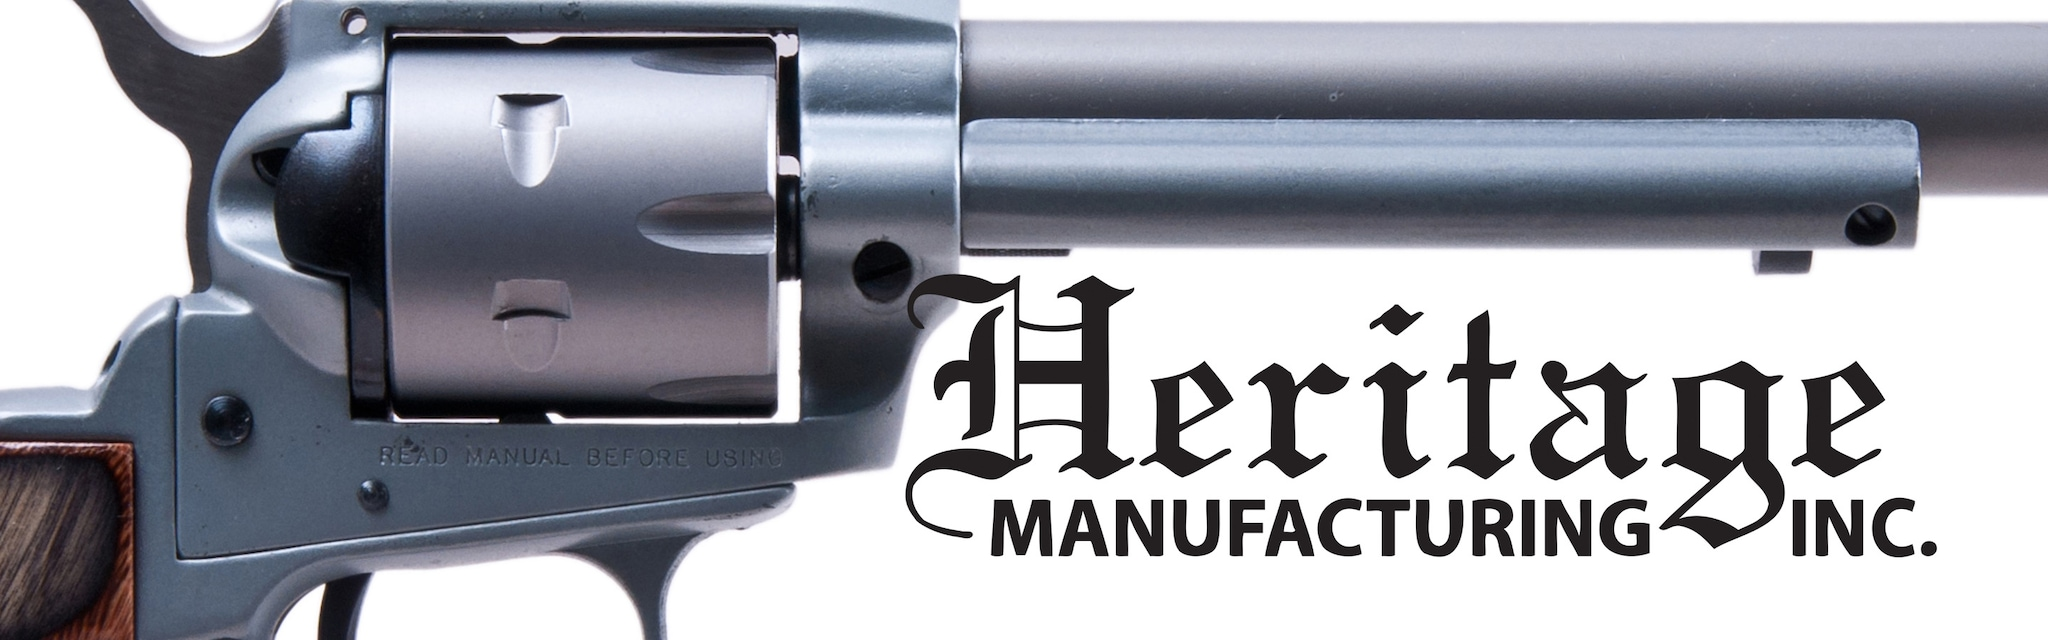 Heritage Manufacturing Inc Brand Page